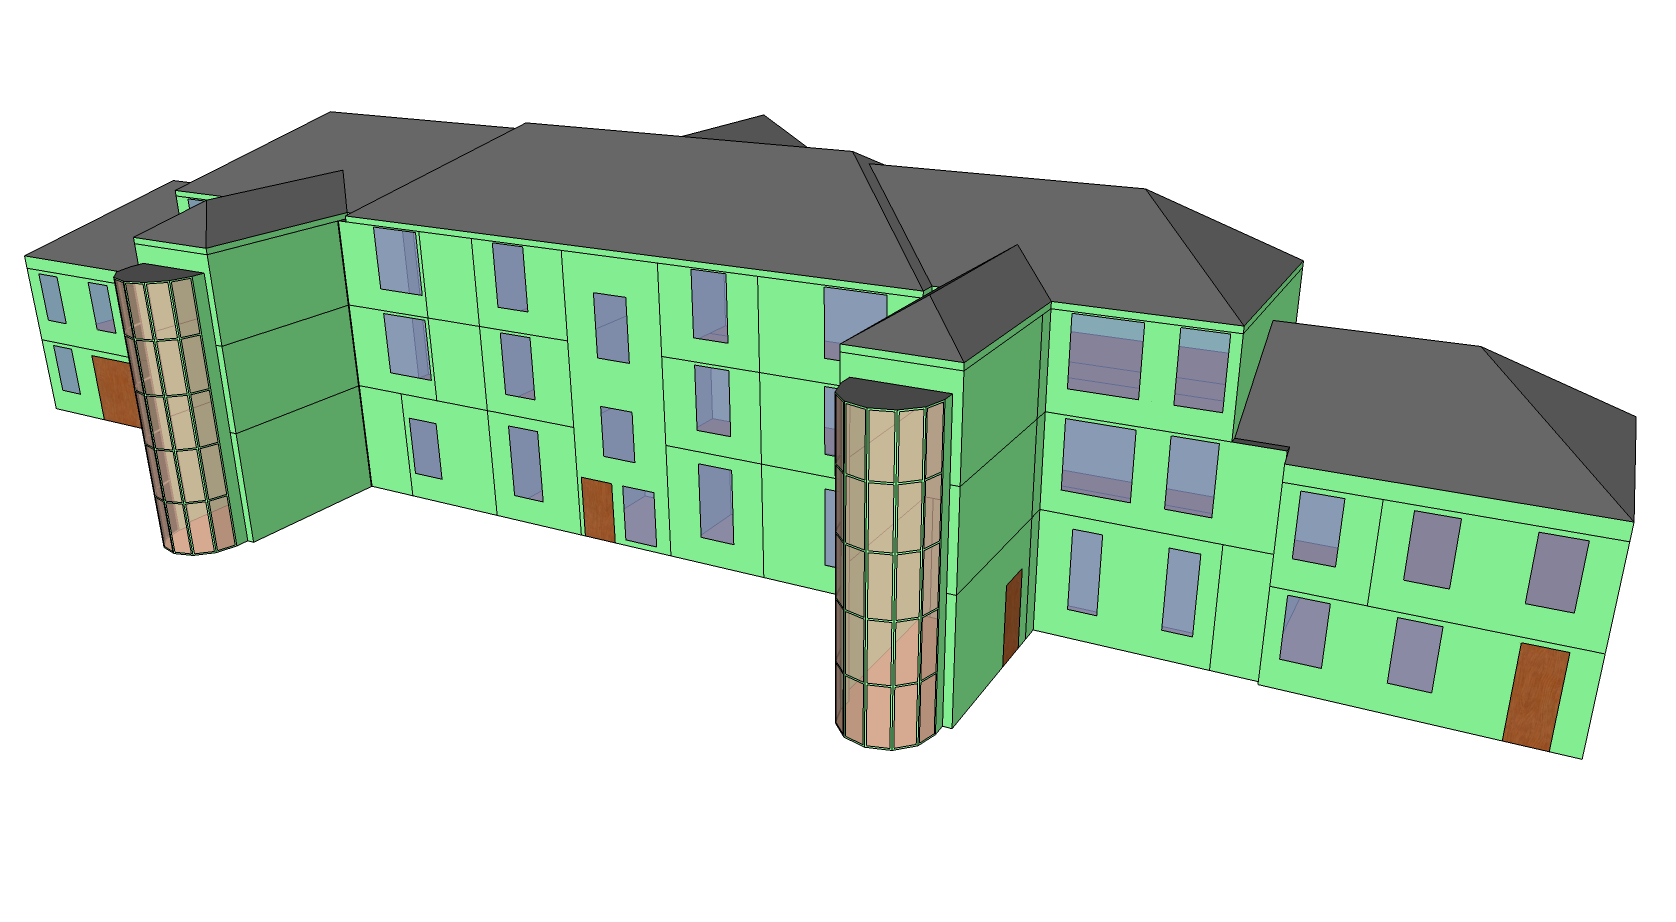 Google sketchup greenspacelive blog for Sketchup building